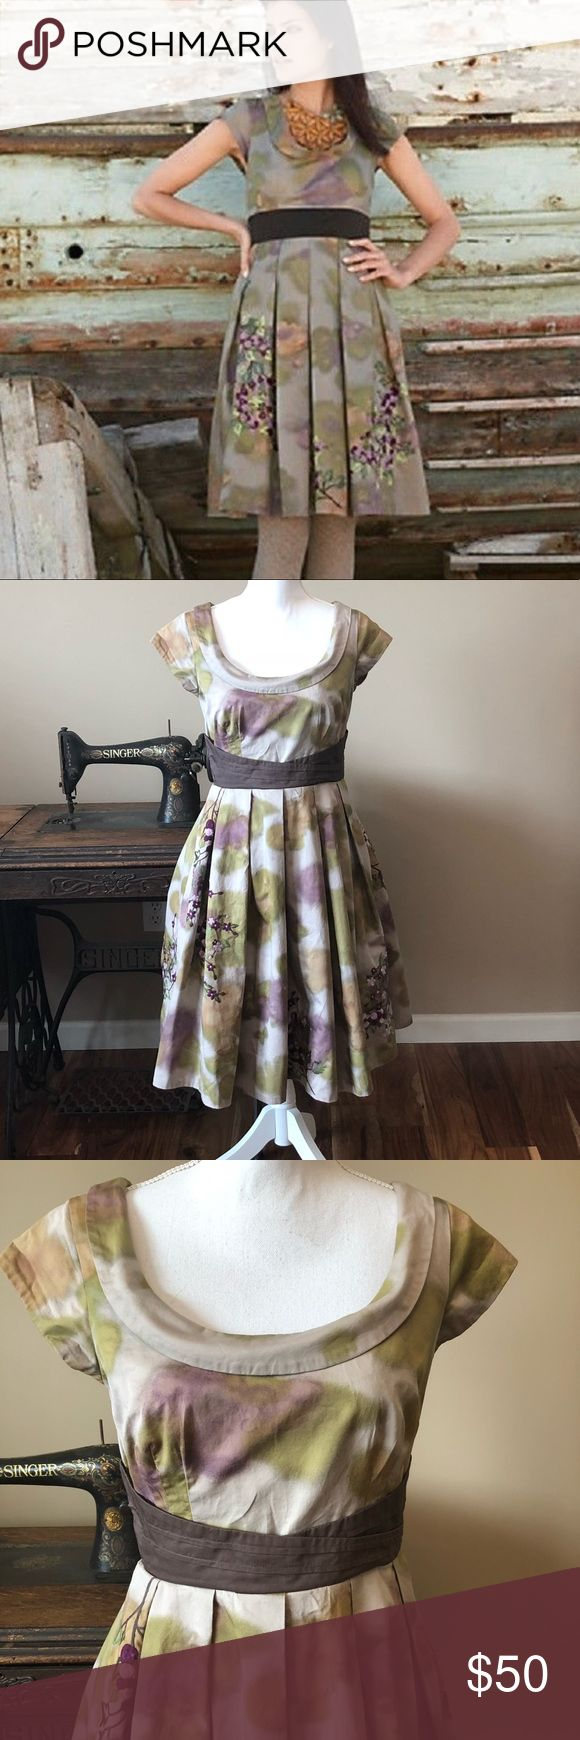 """Anthropologie dress Very good used condition Floreat Anthropologie Trevessia dress.   Stunning water color background with floral embroidery and side zip closure.  Has petticoat underneath.   One hanger strap is broken but doesn't affect appearance or wear of dress.   Size 8 measuring approximately 17"""" armpit to armpit and medium 39"""" in length. Anthropologie Dresses"""